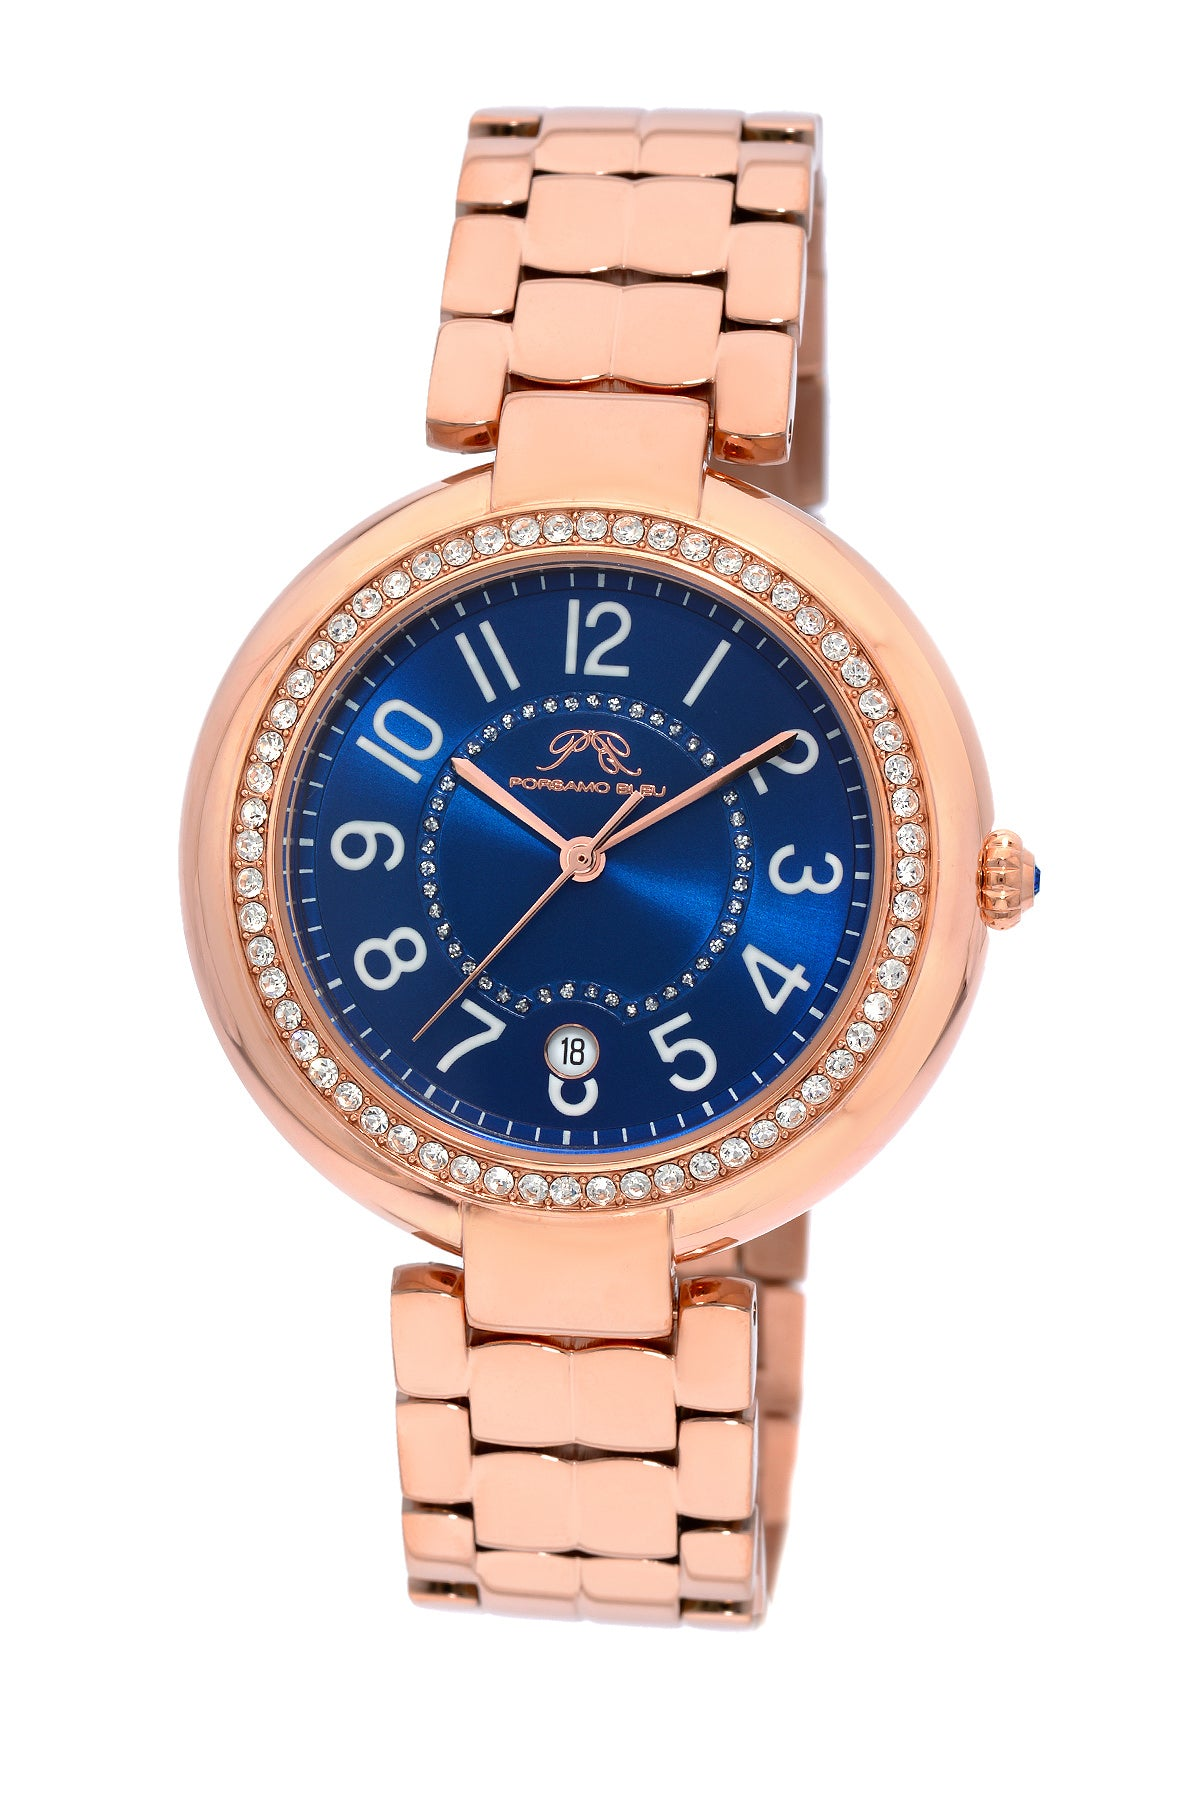 Porsamo Bleu Sofia luxury women's stainless steel watch, rose, blue 952CSOS